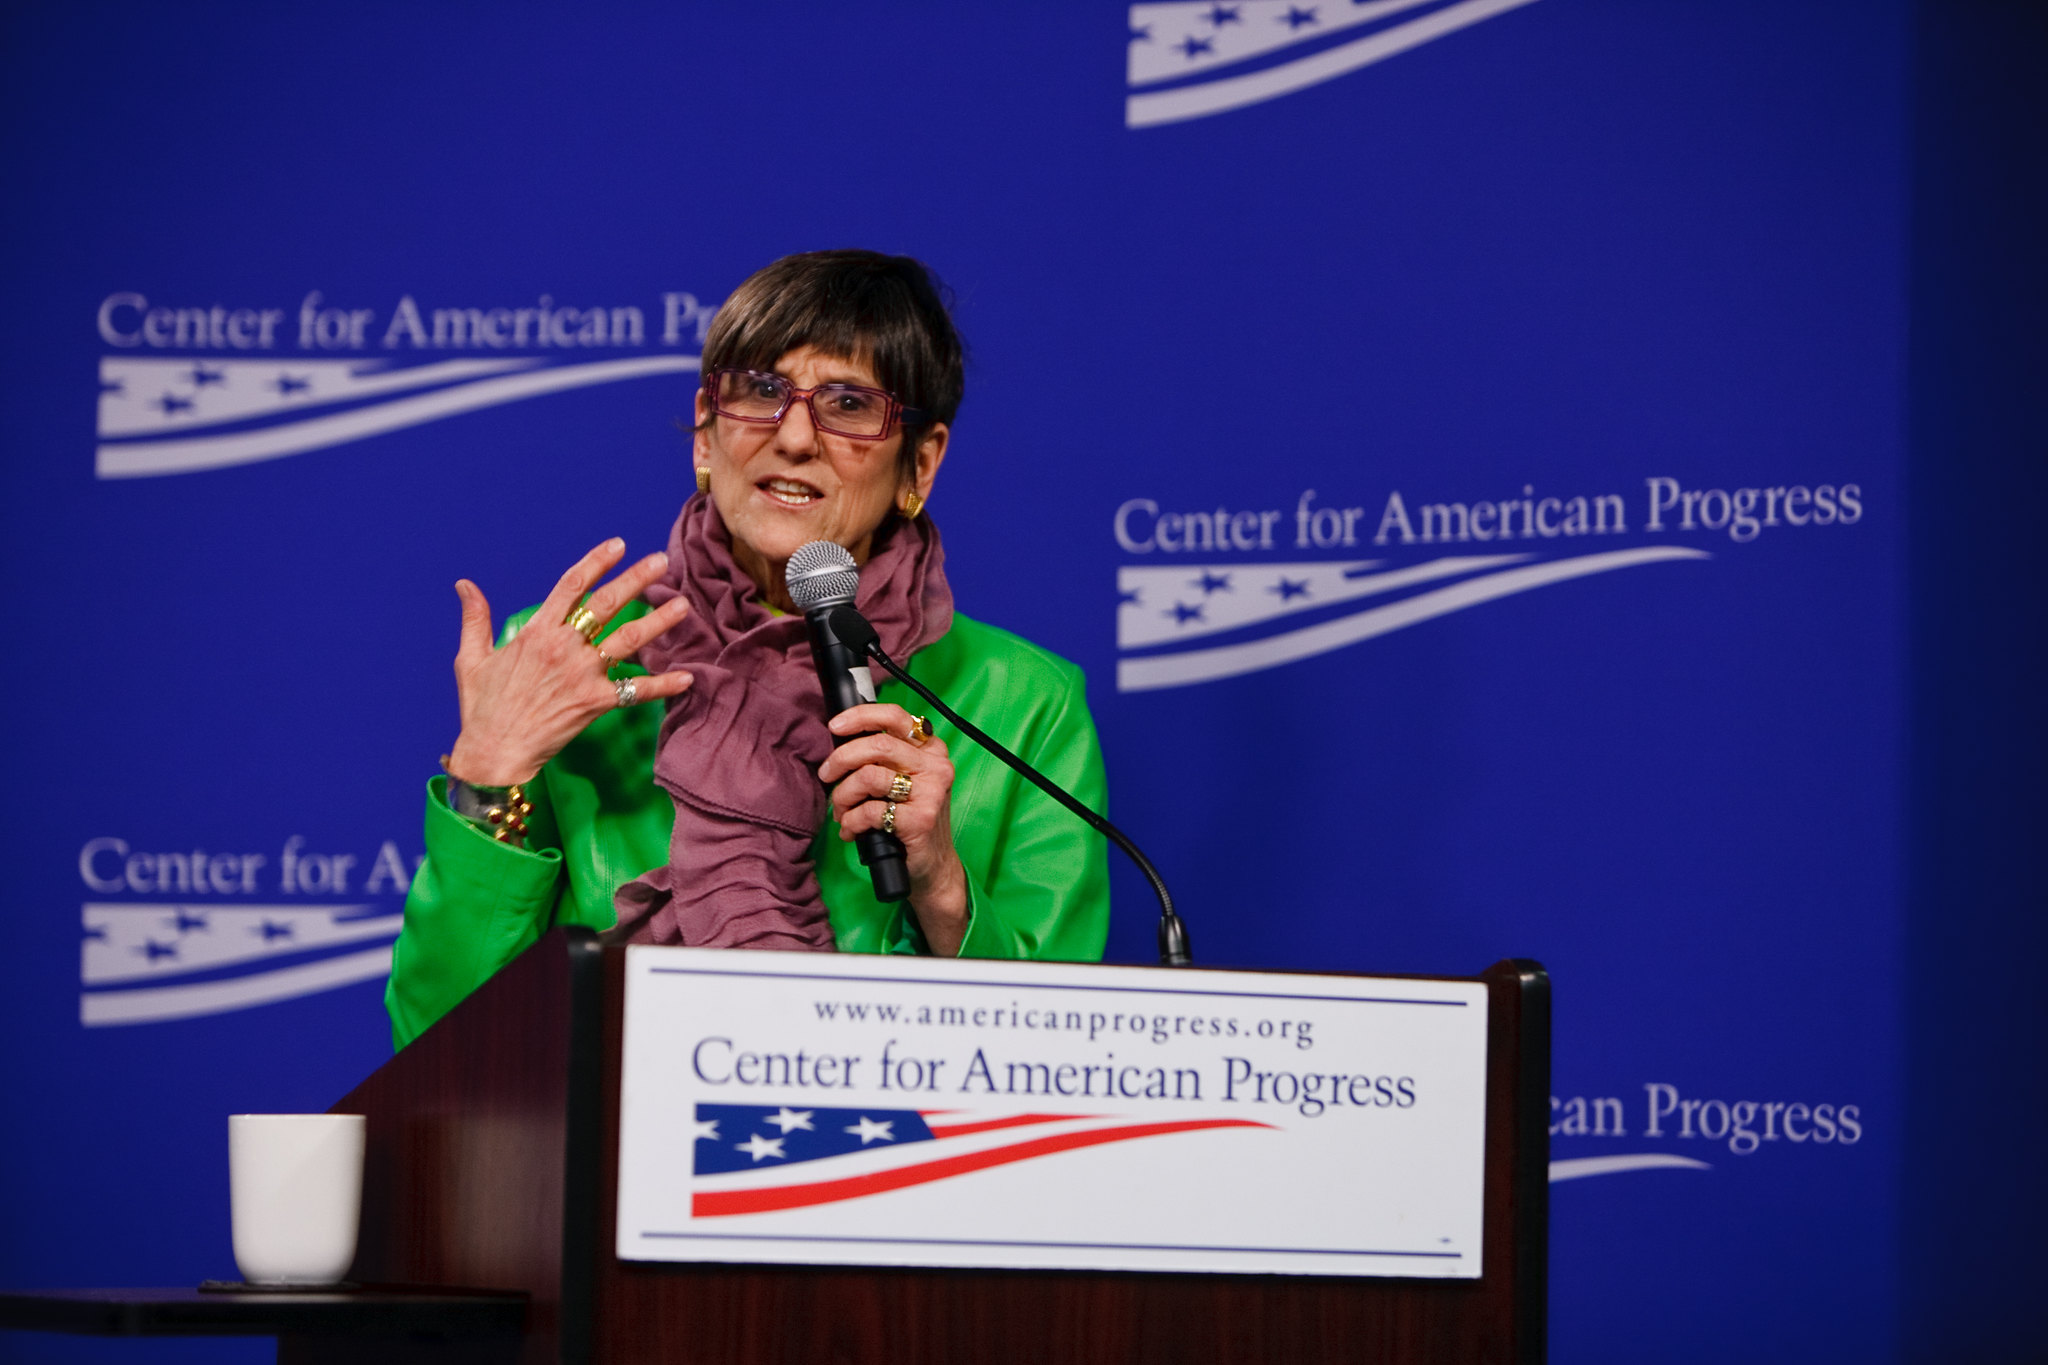 Rep. DeLauro sponsors sweeping independent contractor bill; would force businesses to post emoji faces on store fronts